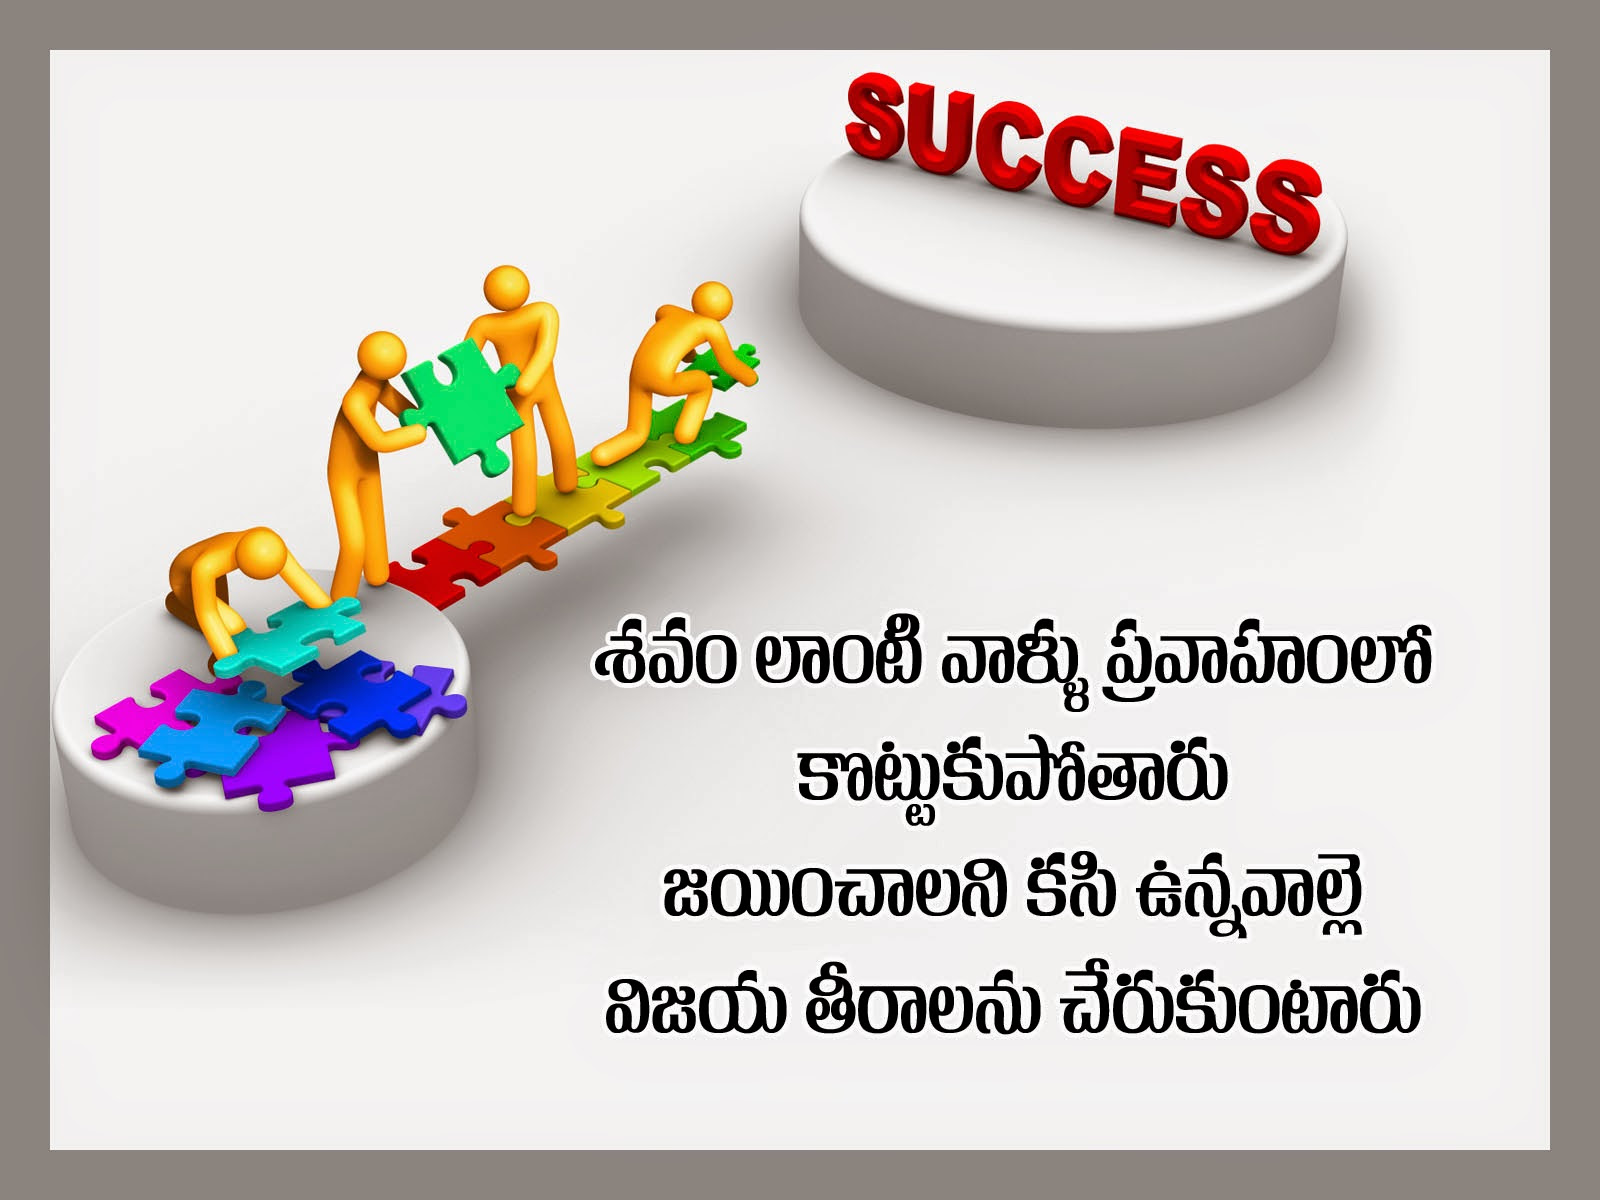 Telugu Inspirational Quotes On Success For Whatsapp Best Greetings